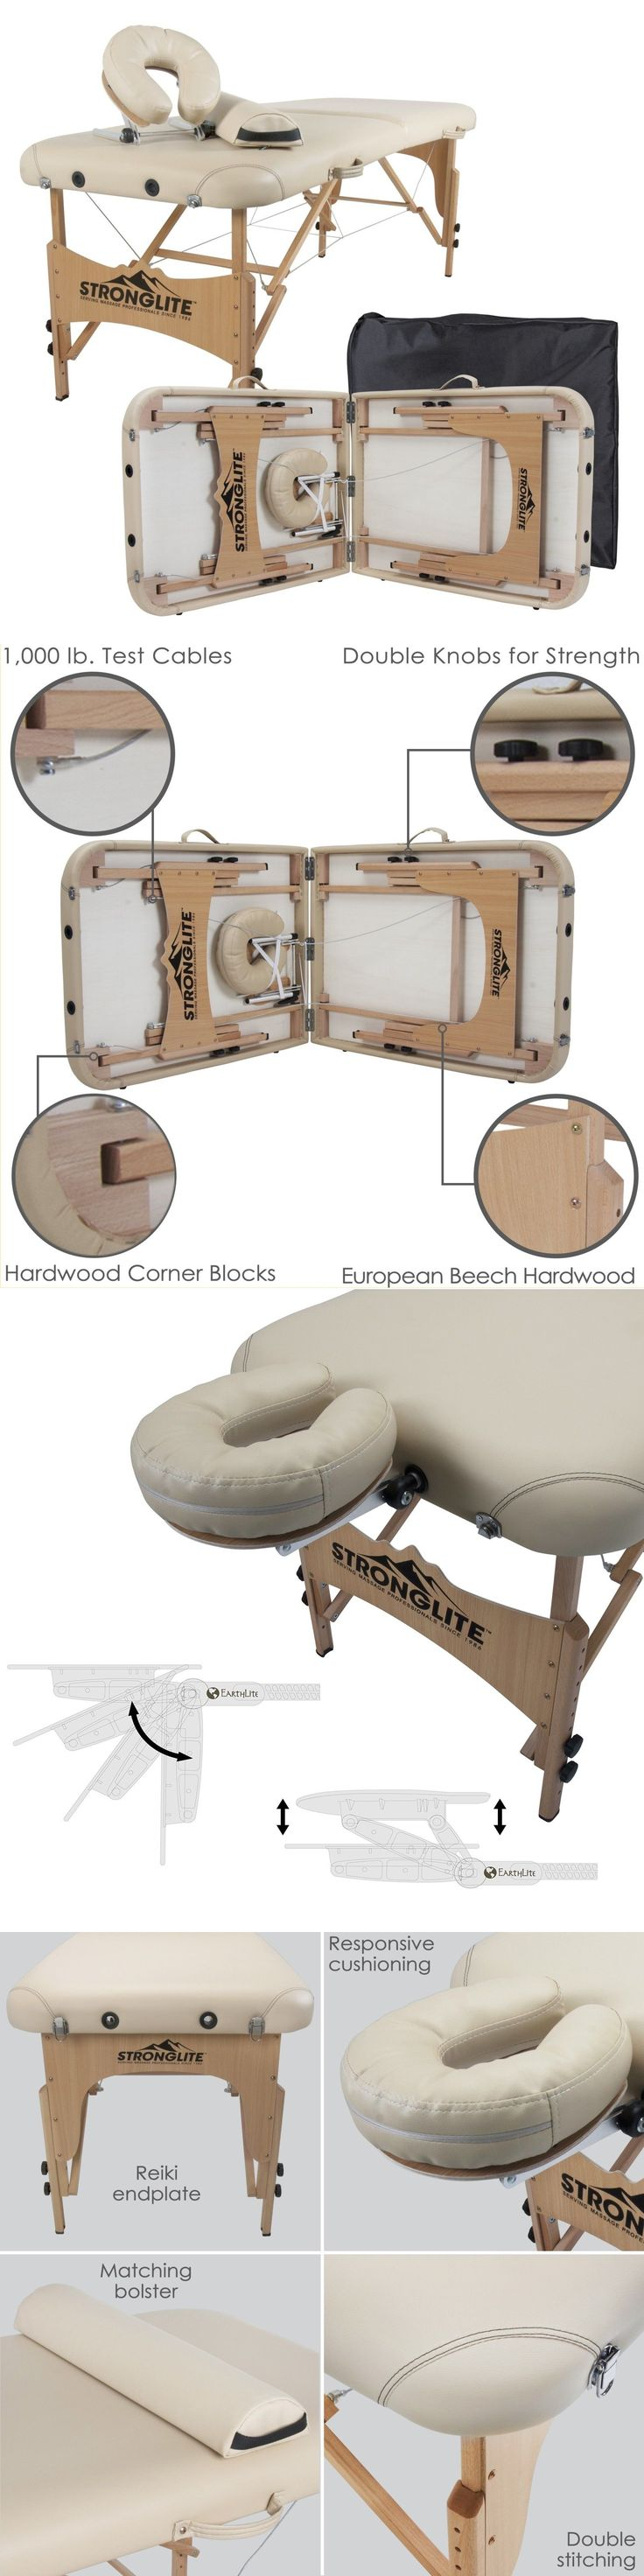 643 best Other Massage Equipment and Accs images on Pinterest